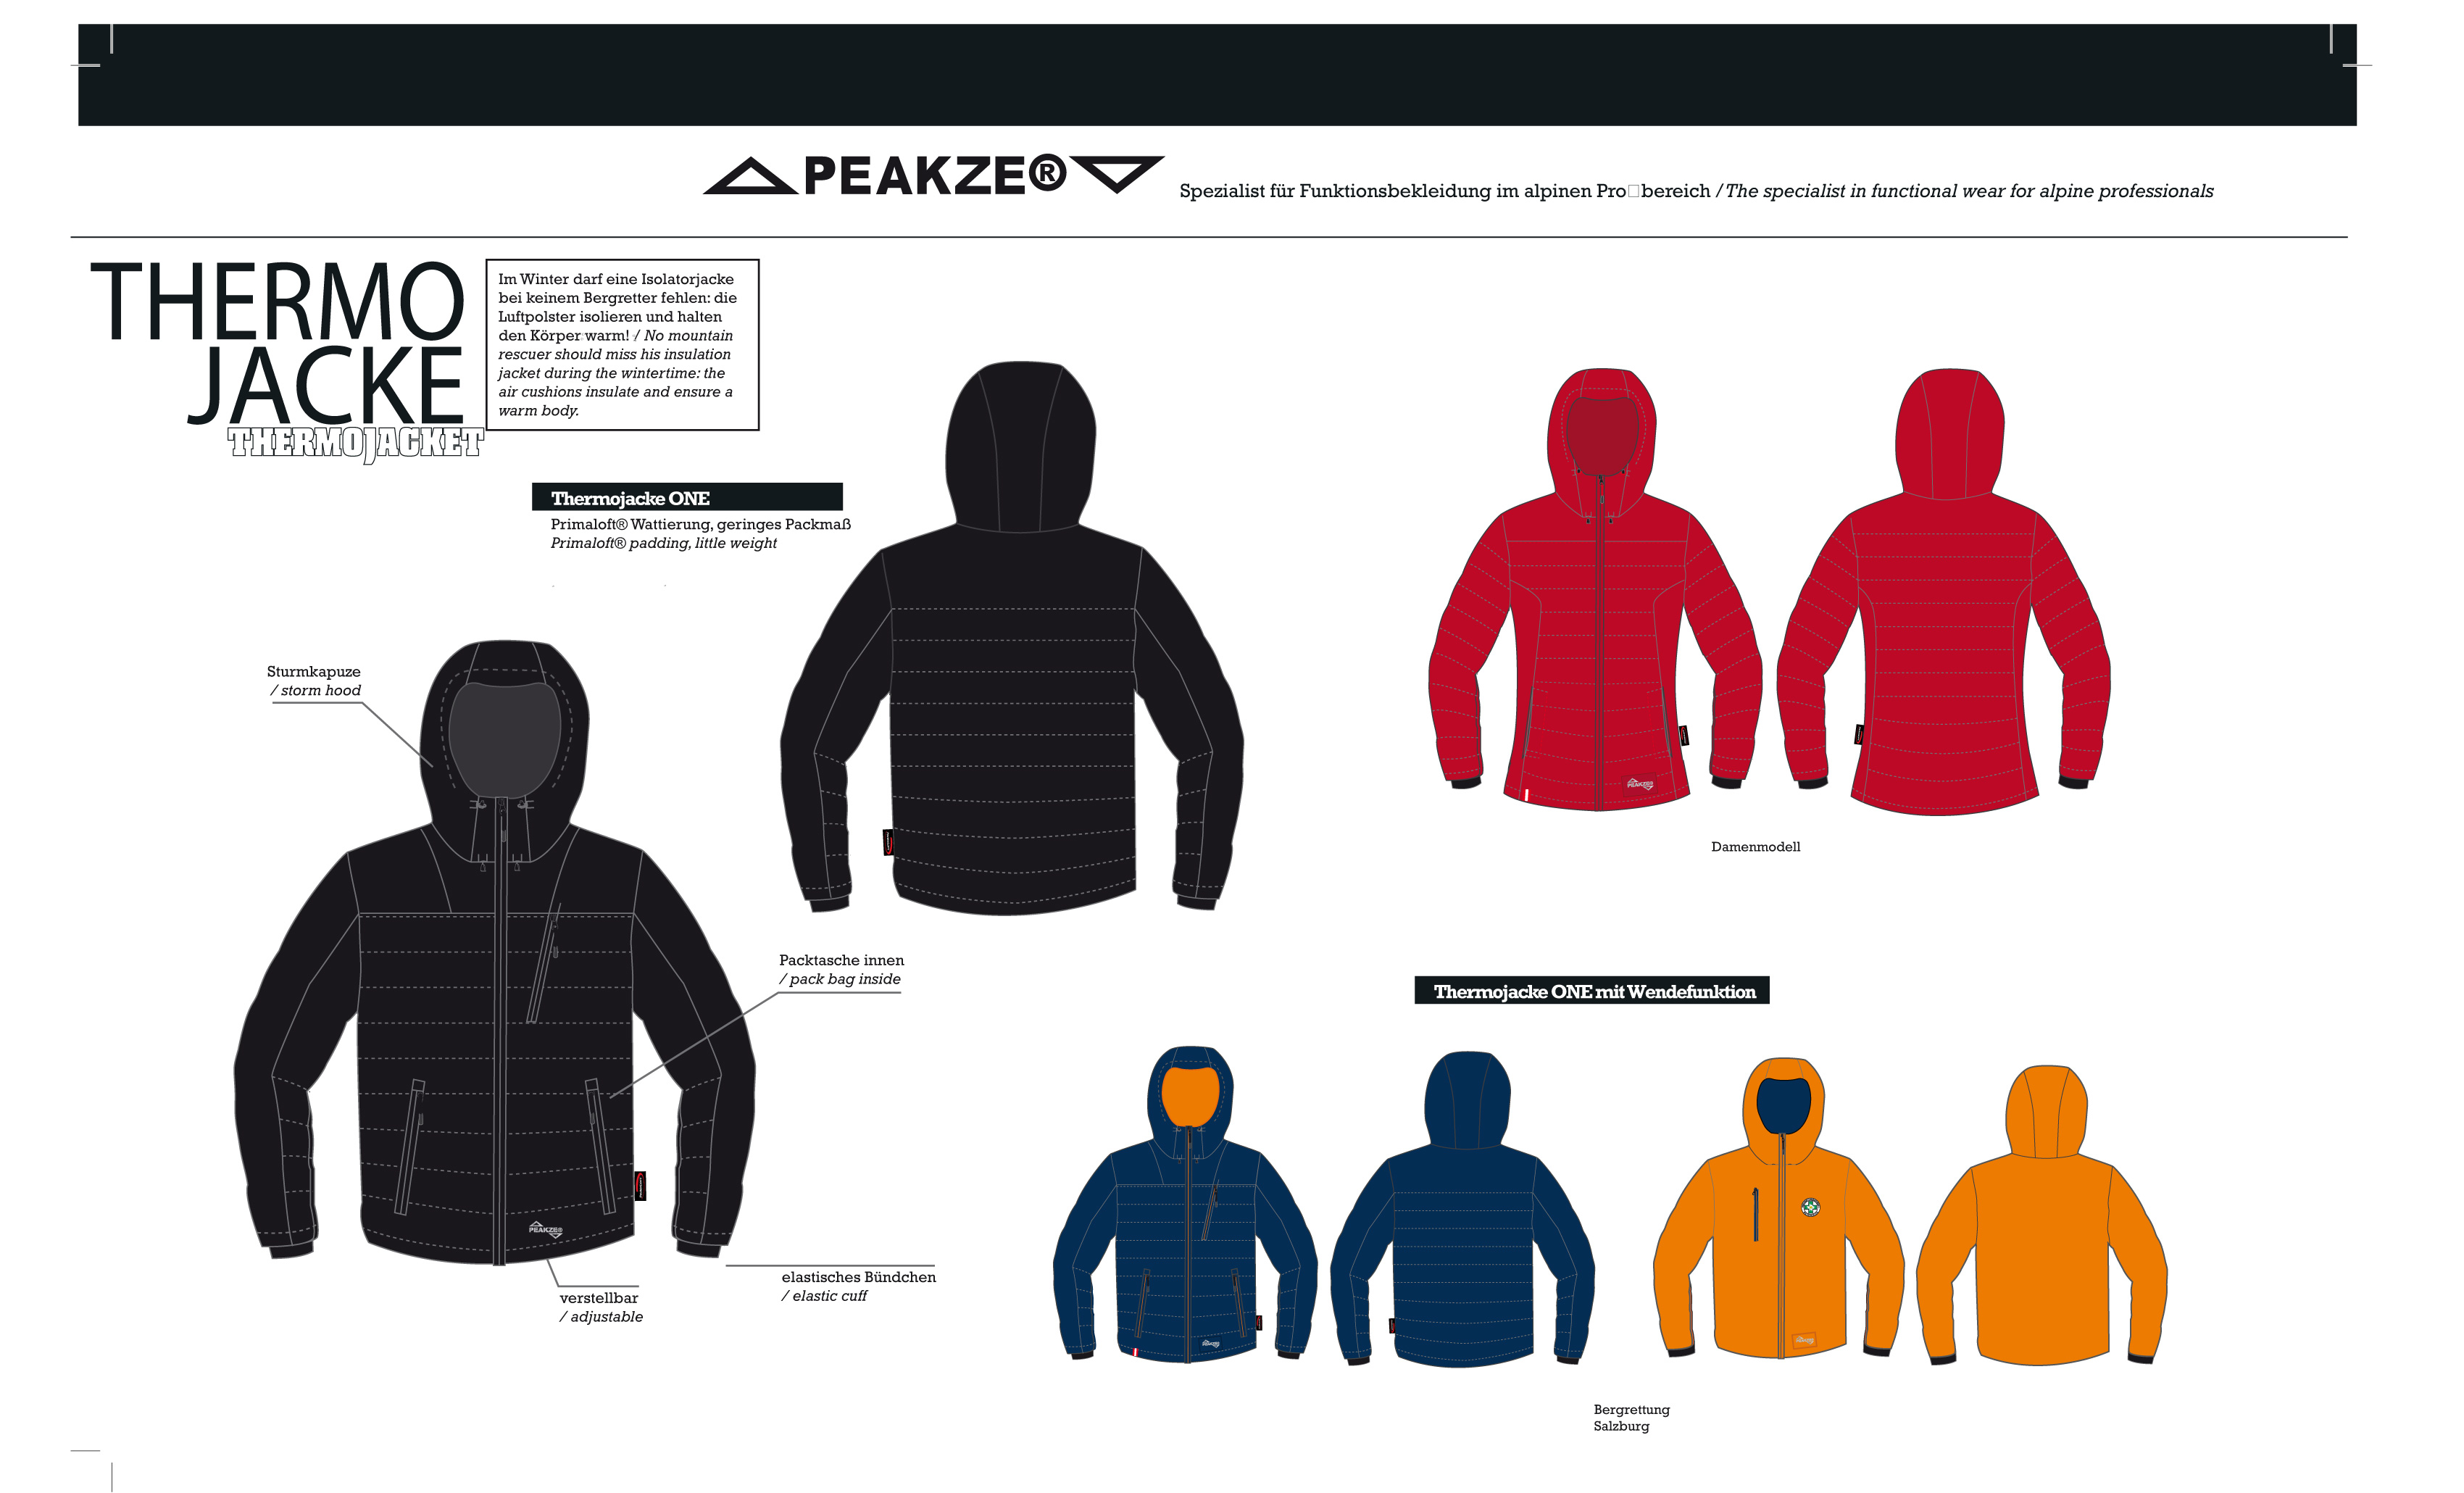 Thermo Jacke